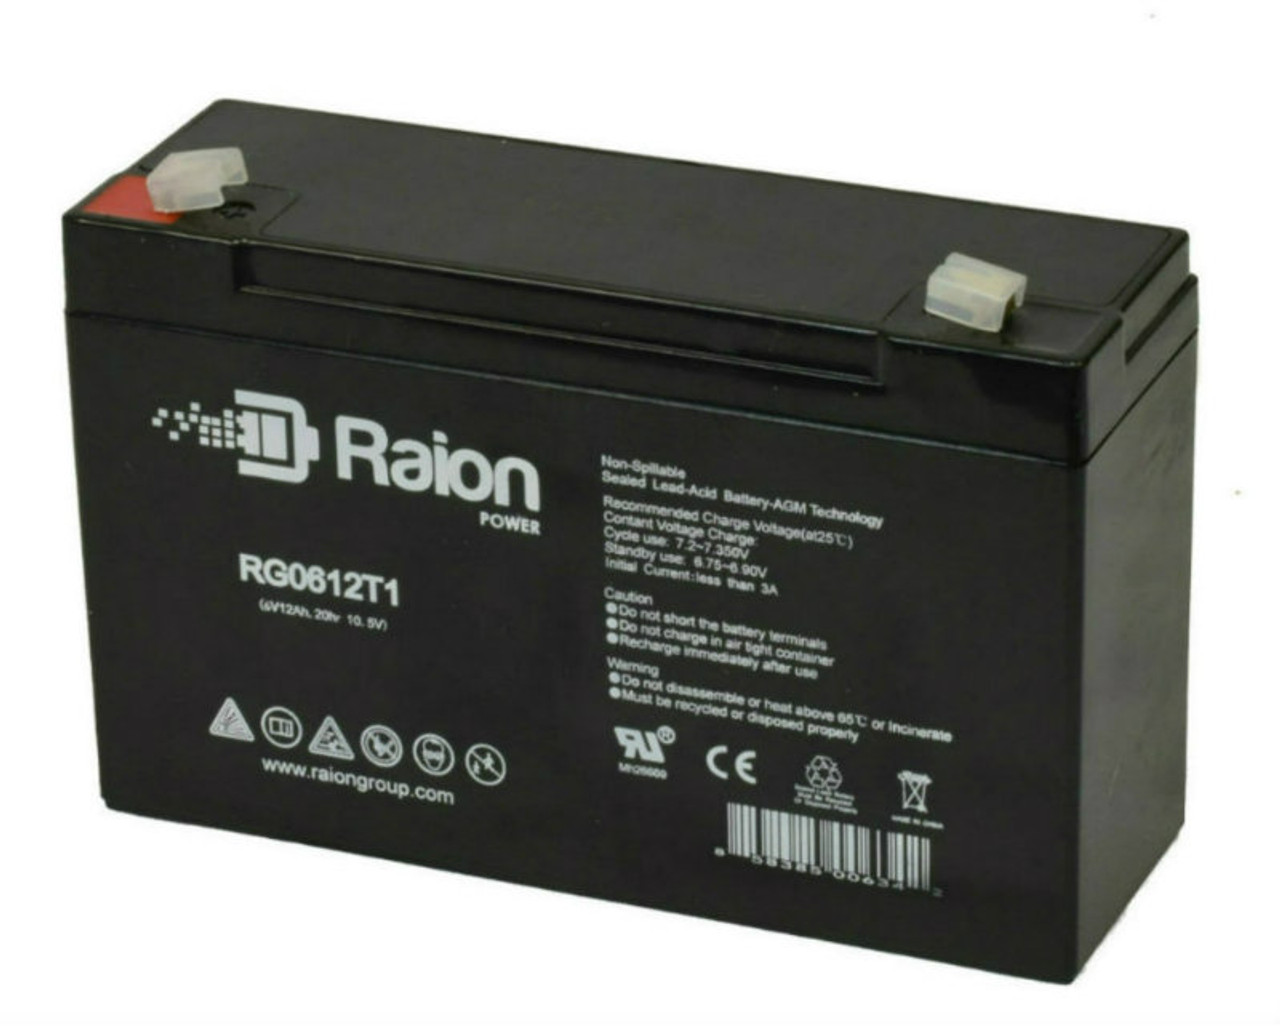 Raion Power RG06120T1 Replacement Battery Pack for Siltron WB68 emergency light